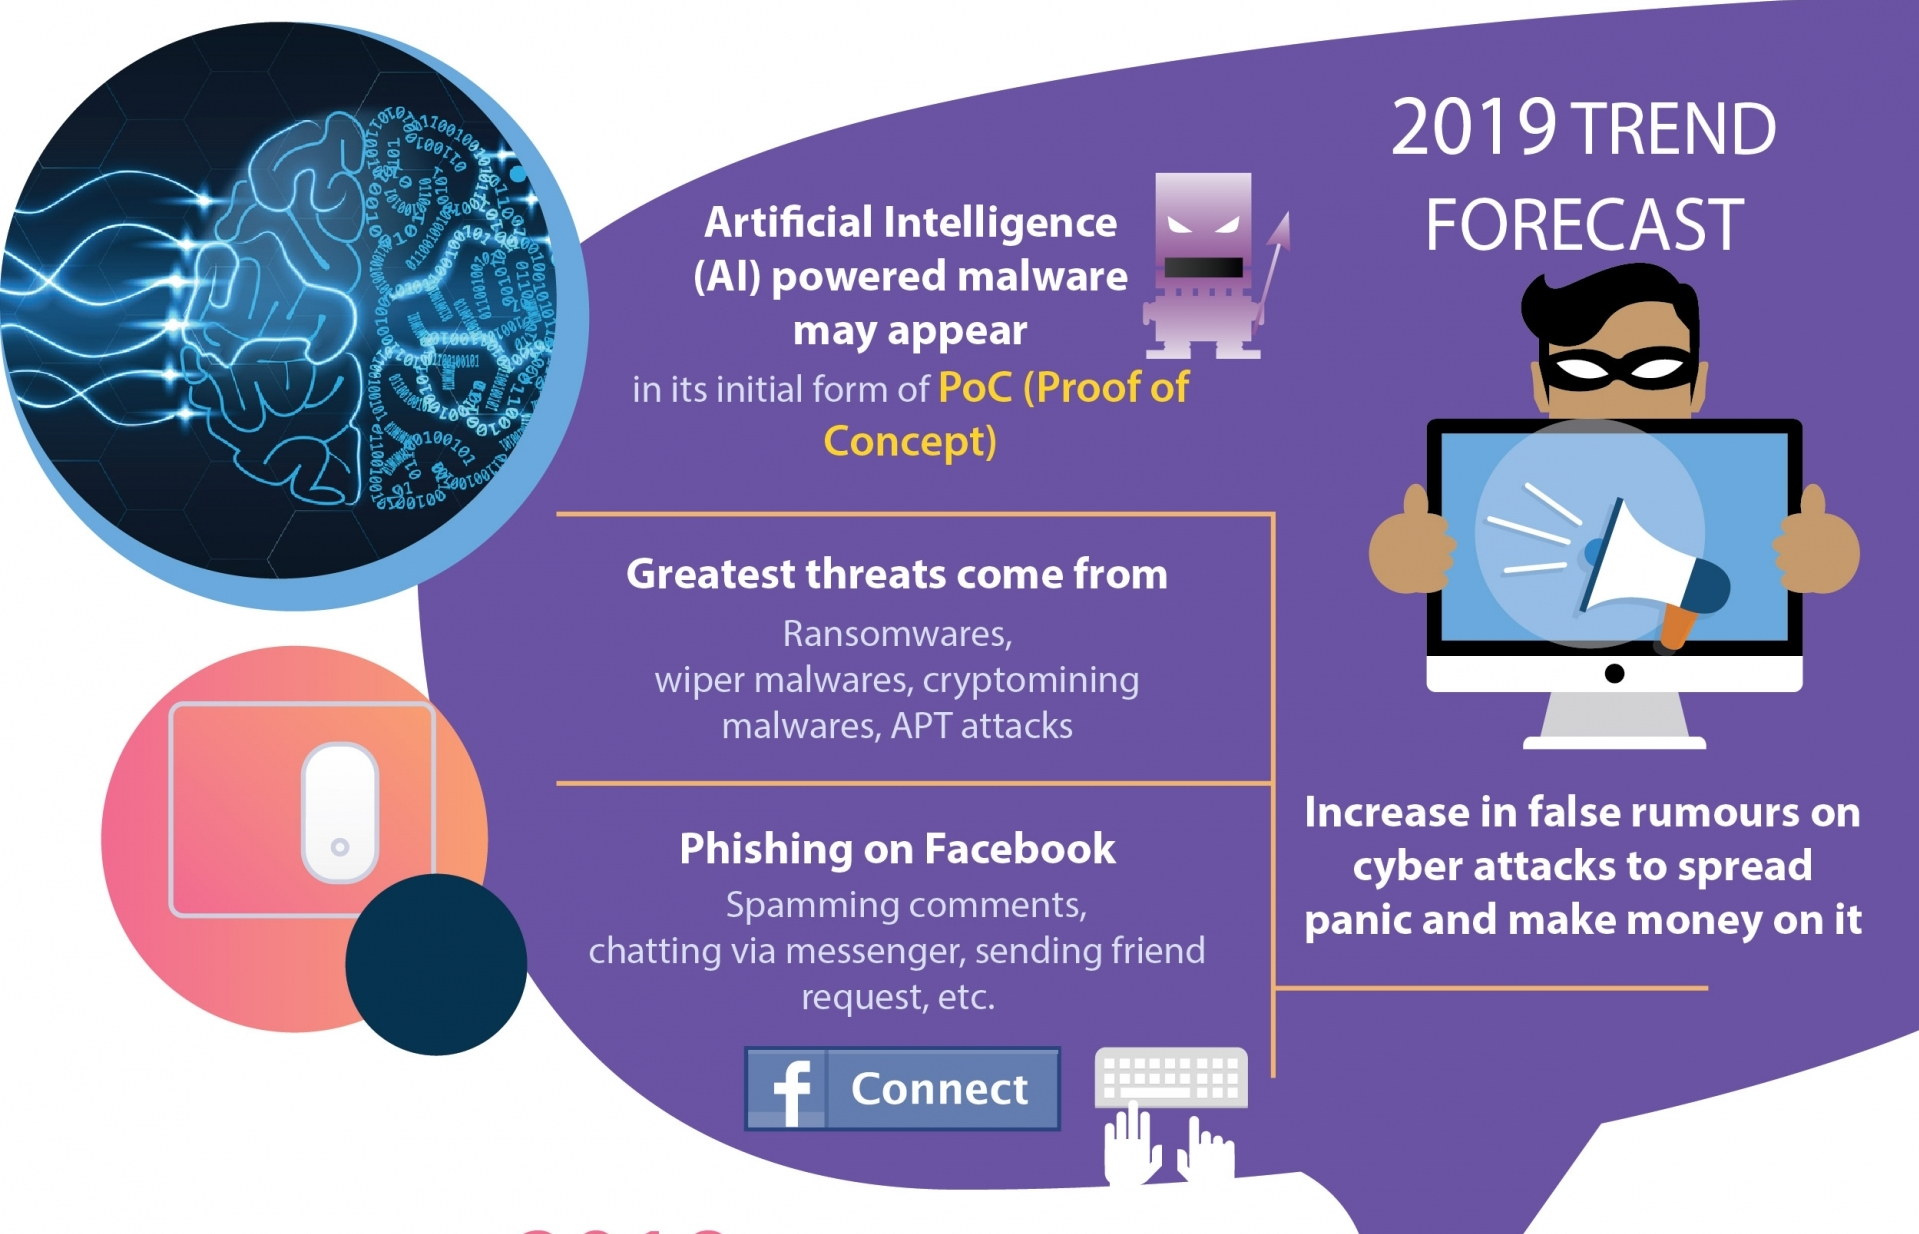 artificial intelligence powered malwares may fuel fears in 2019